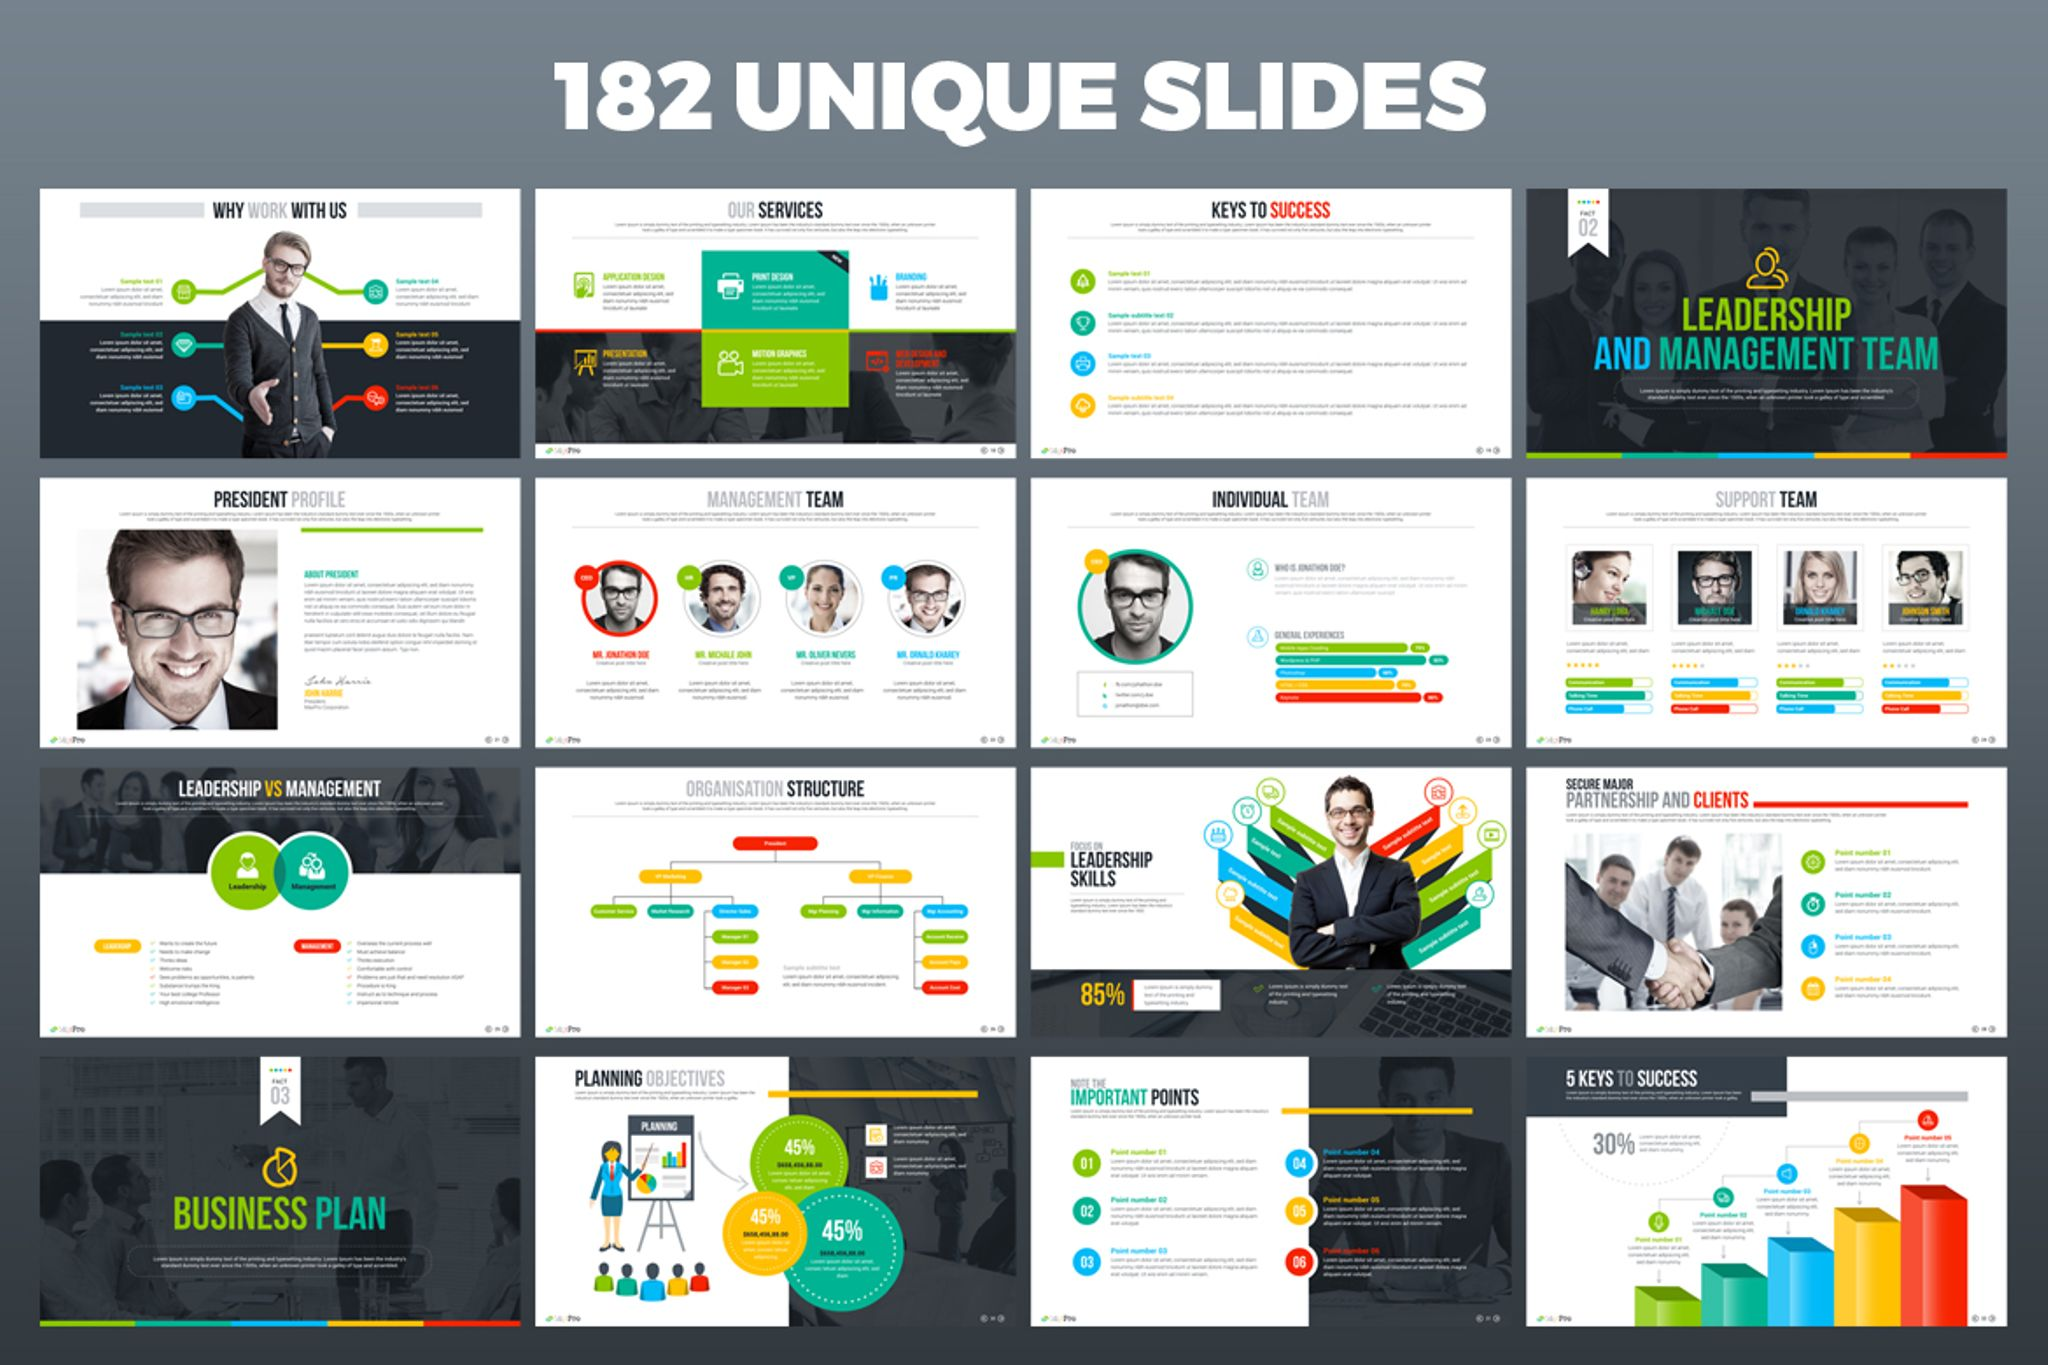 Maxpro business plan powerpoint template 66751 maxpro business plan powerpoint template big screenshot toneelgroepblik Choice Image